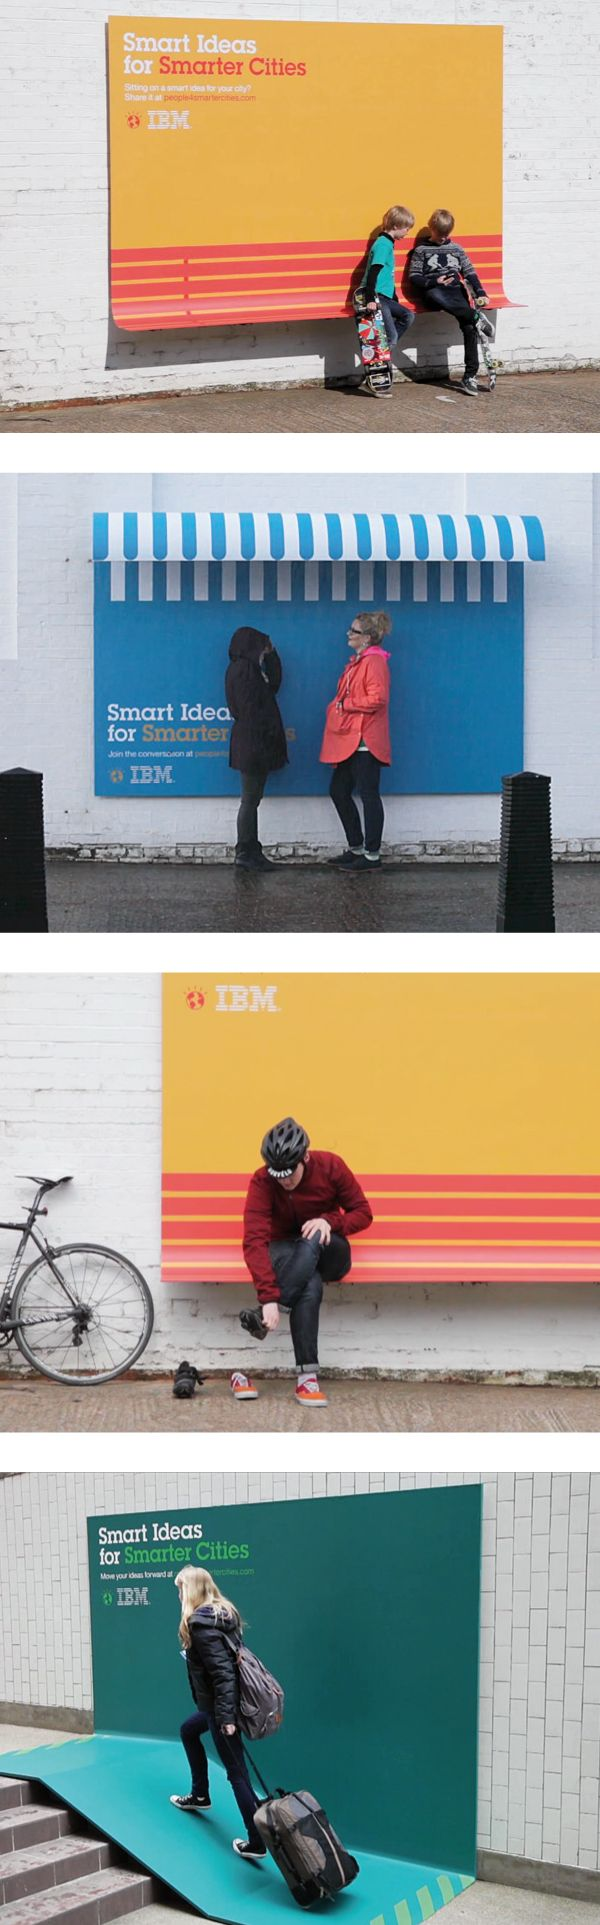 IBM's Smarter Cities Billboard Campaign #advertising #billboard #creative